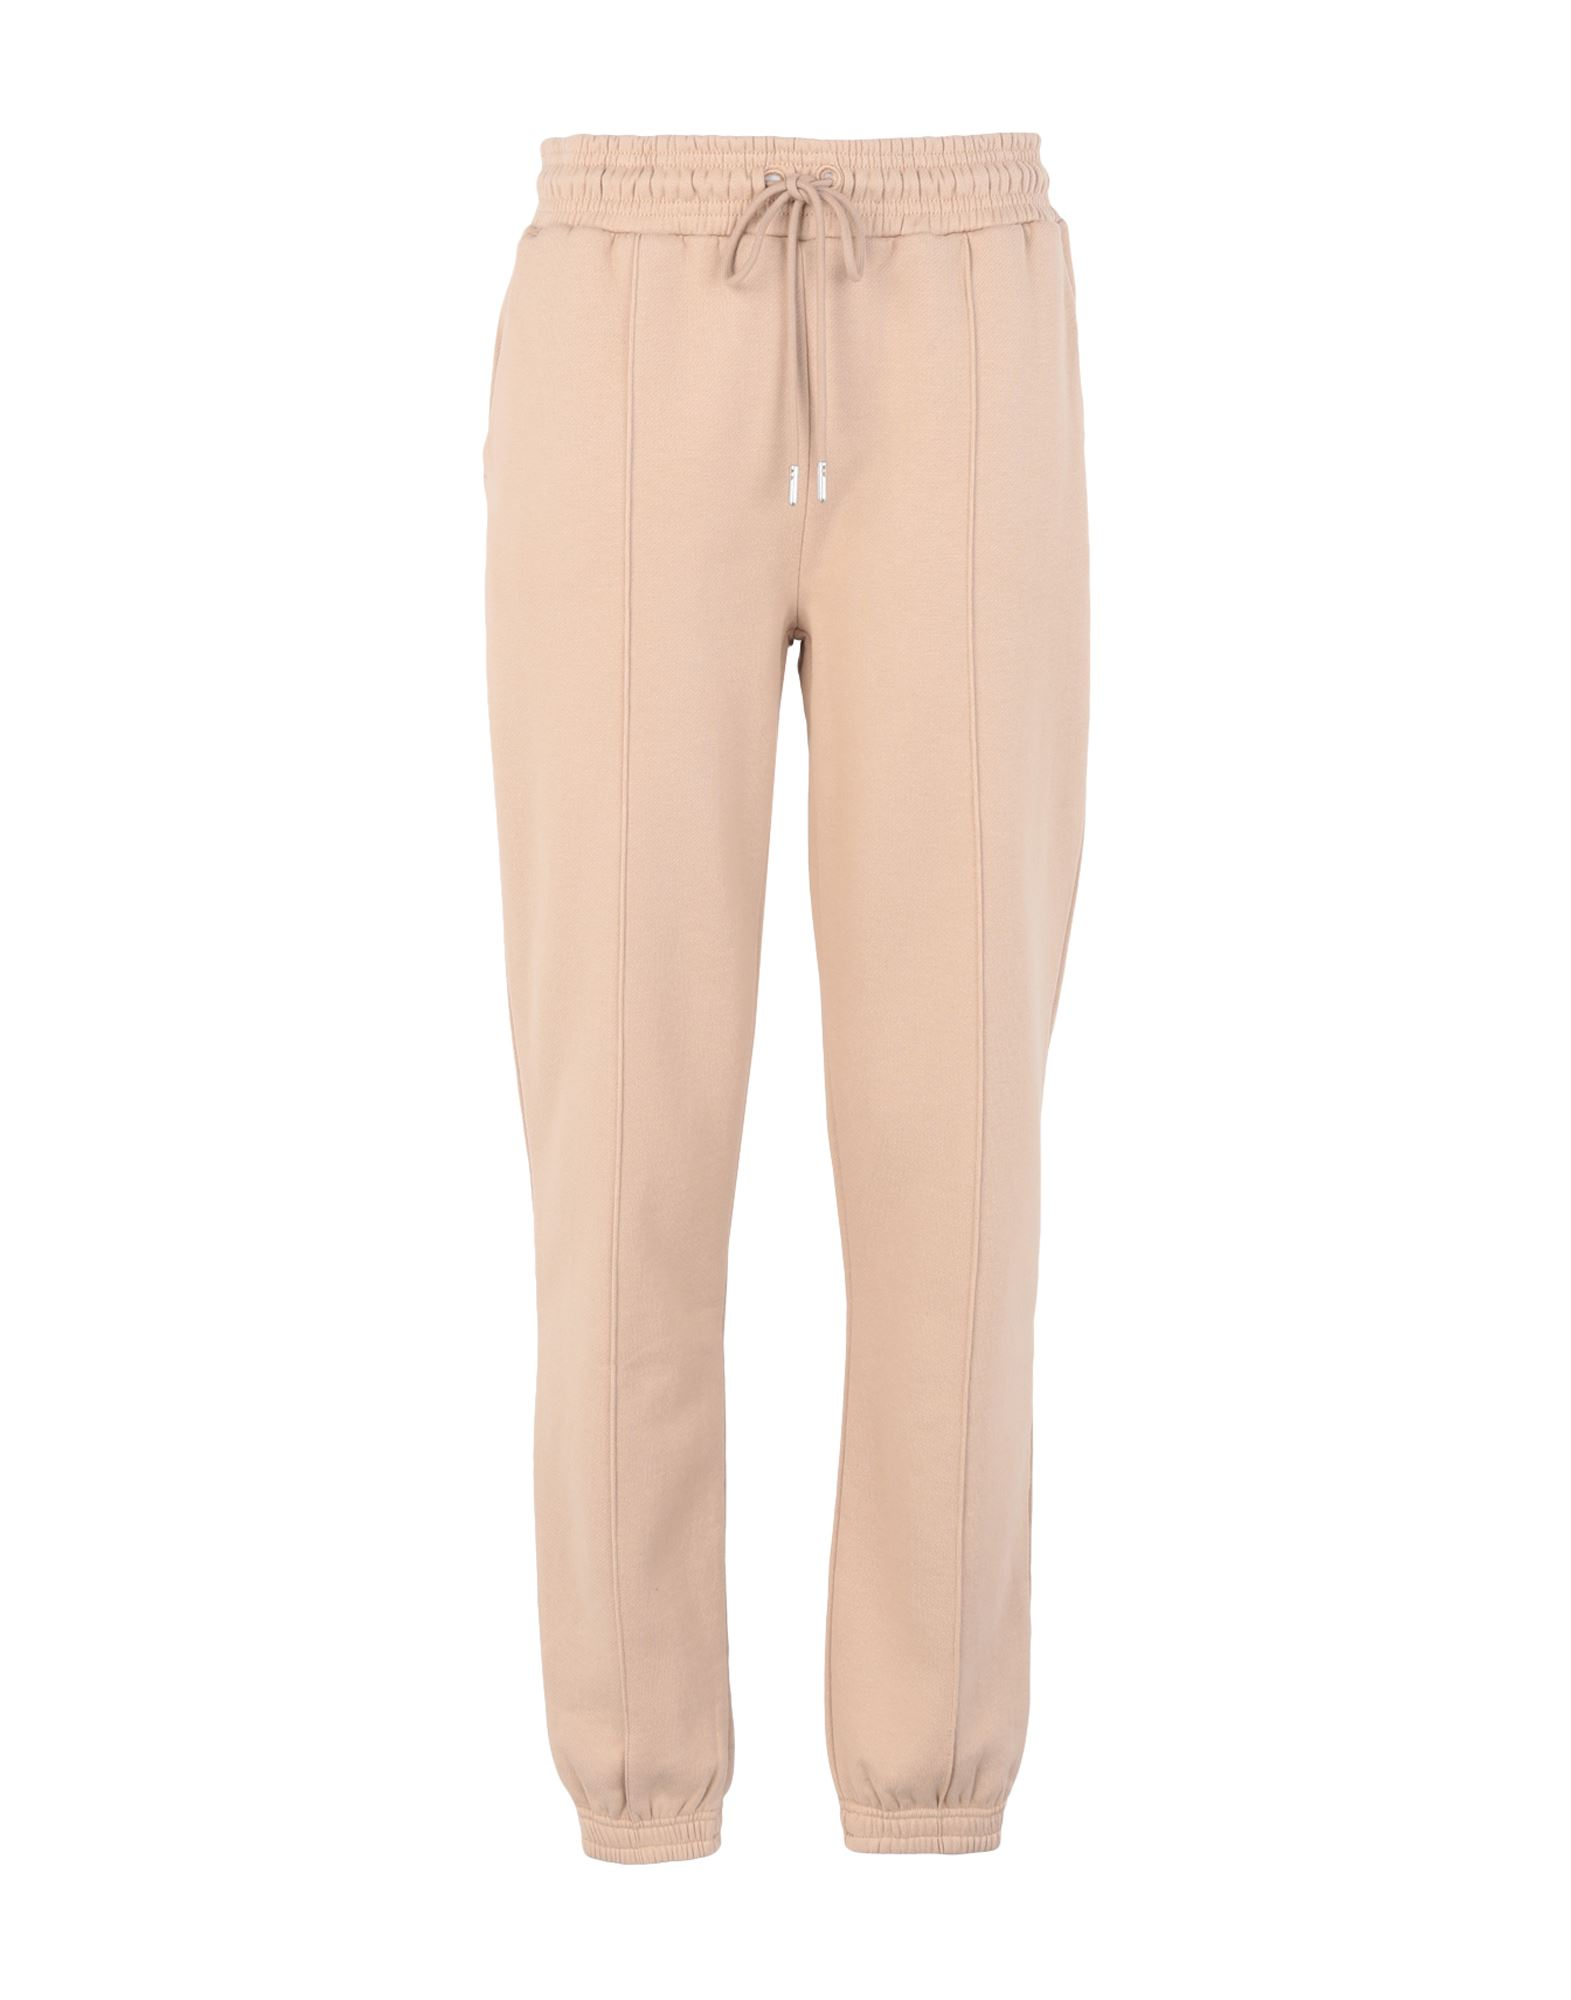 Ninety Percent Casual Pants In Camel